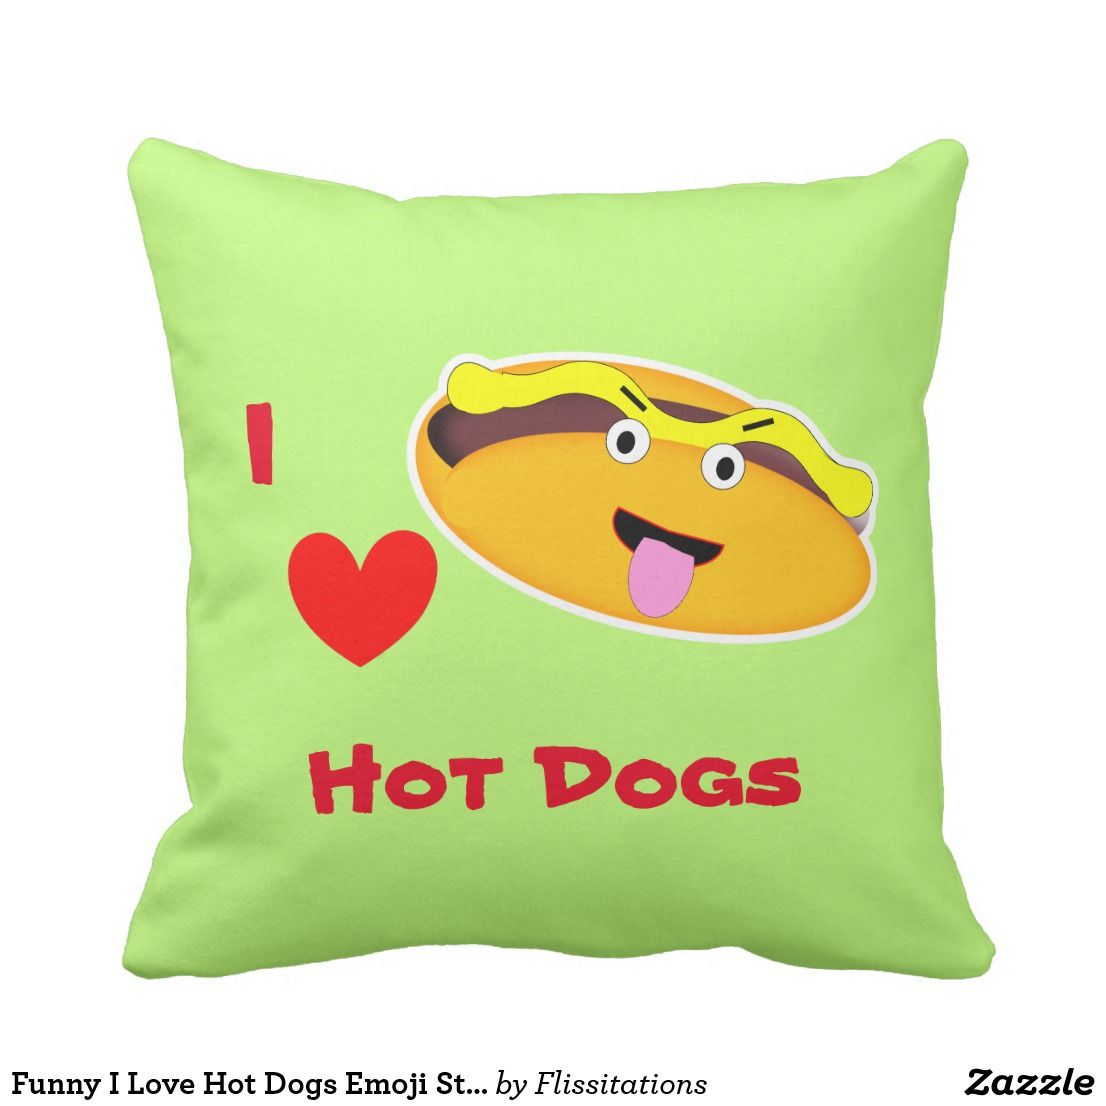 Funny i love hot dogs emoji style throw pillow emoji pillows